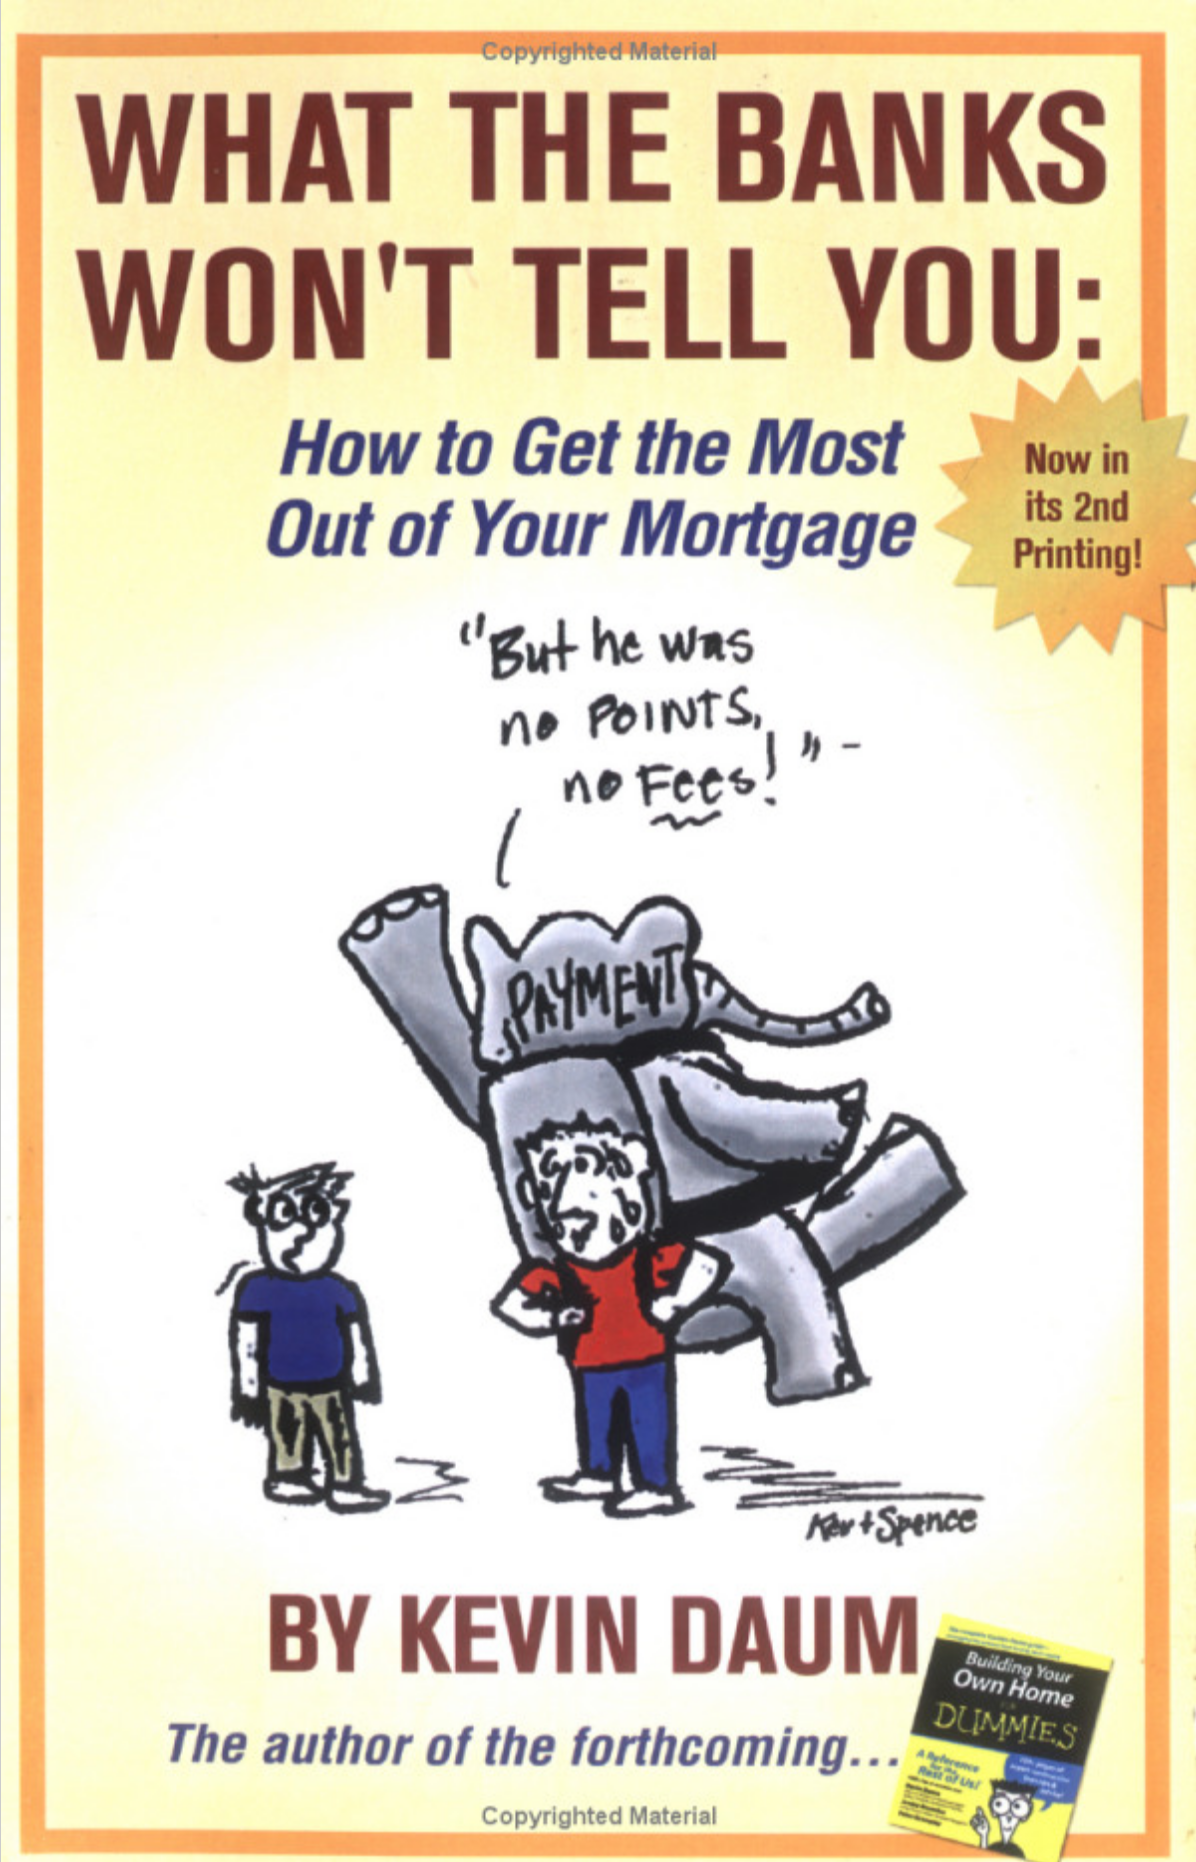 What The Banks Won't Tell You: How to Get the Most Out of Your Mortgage - Kevin Daum